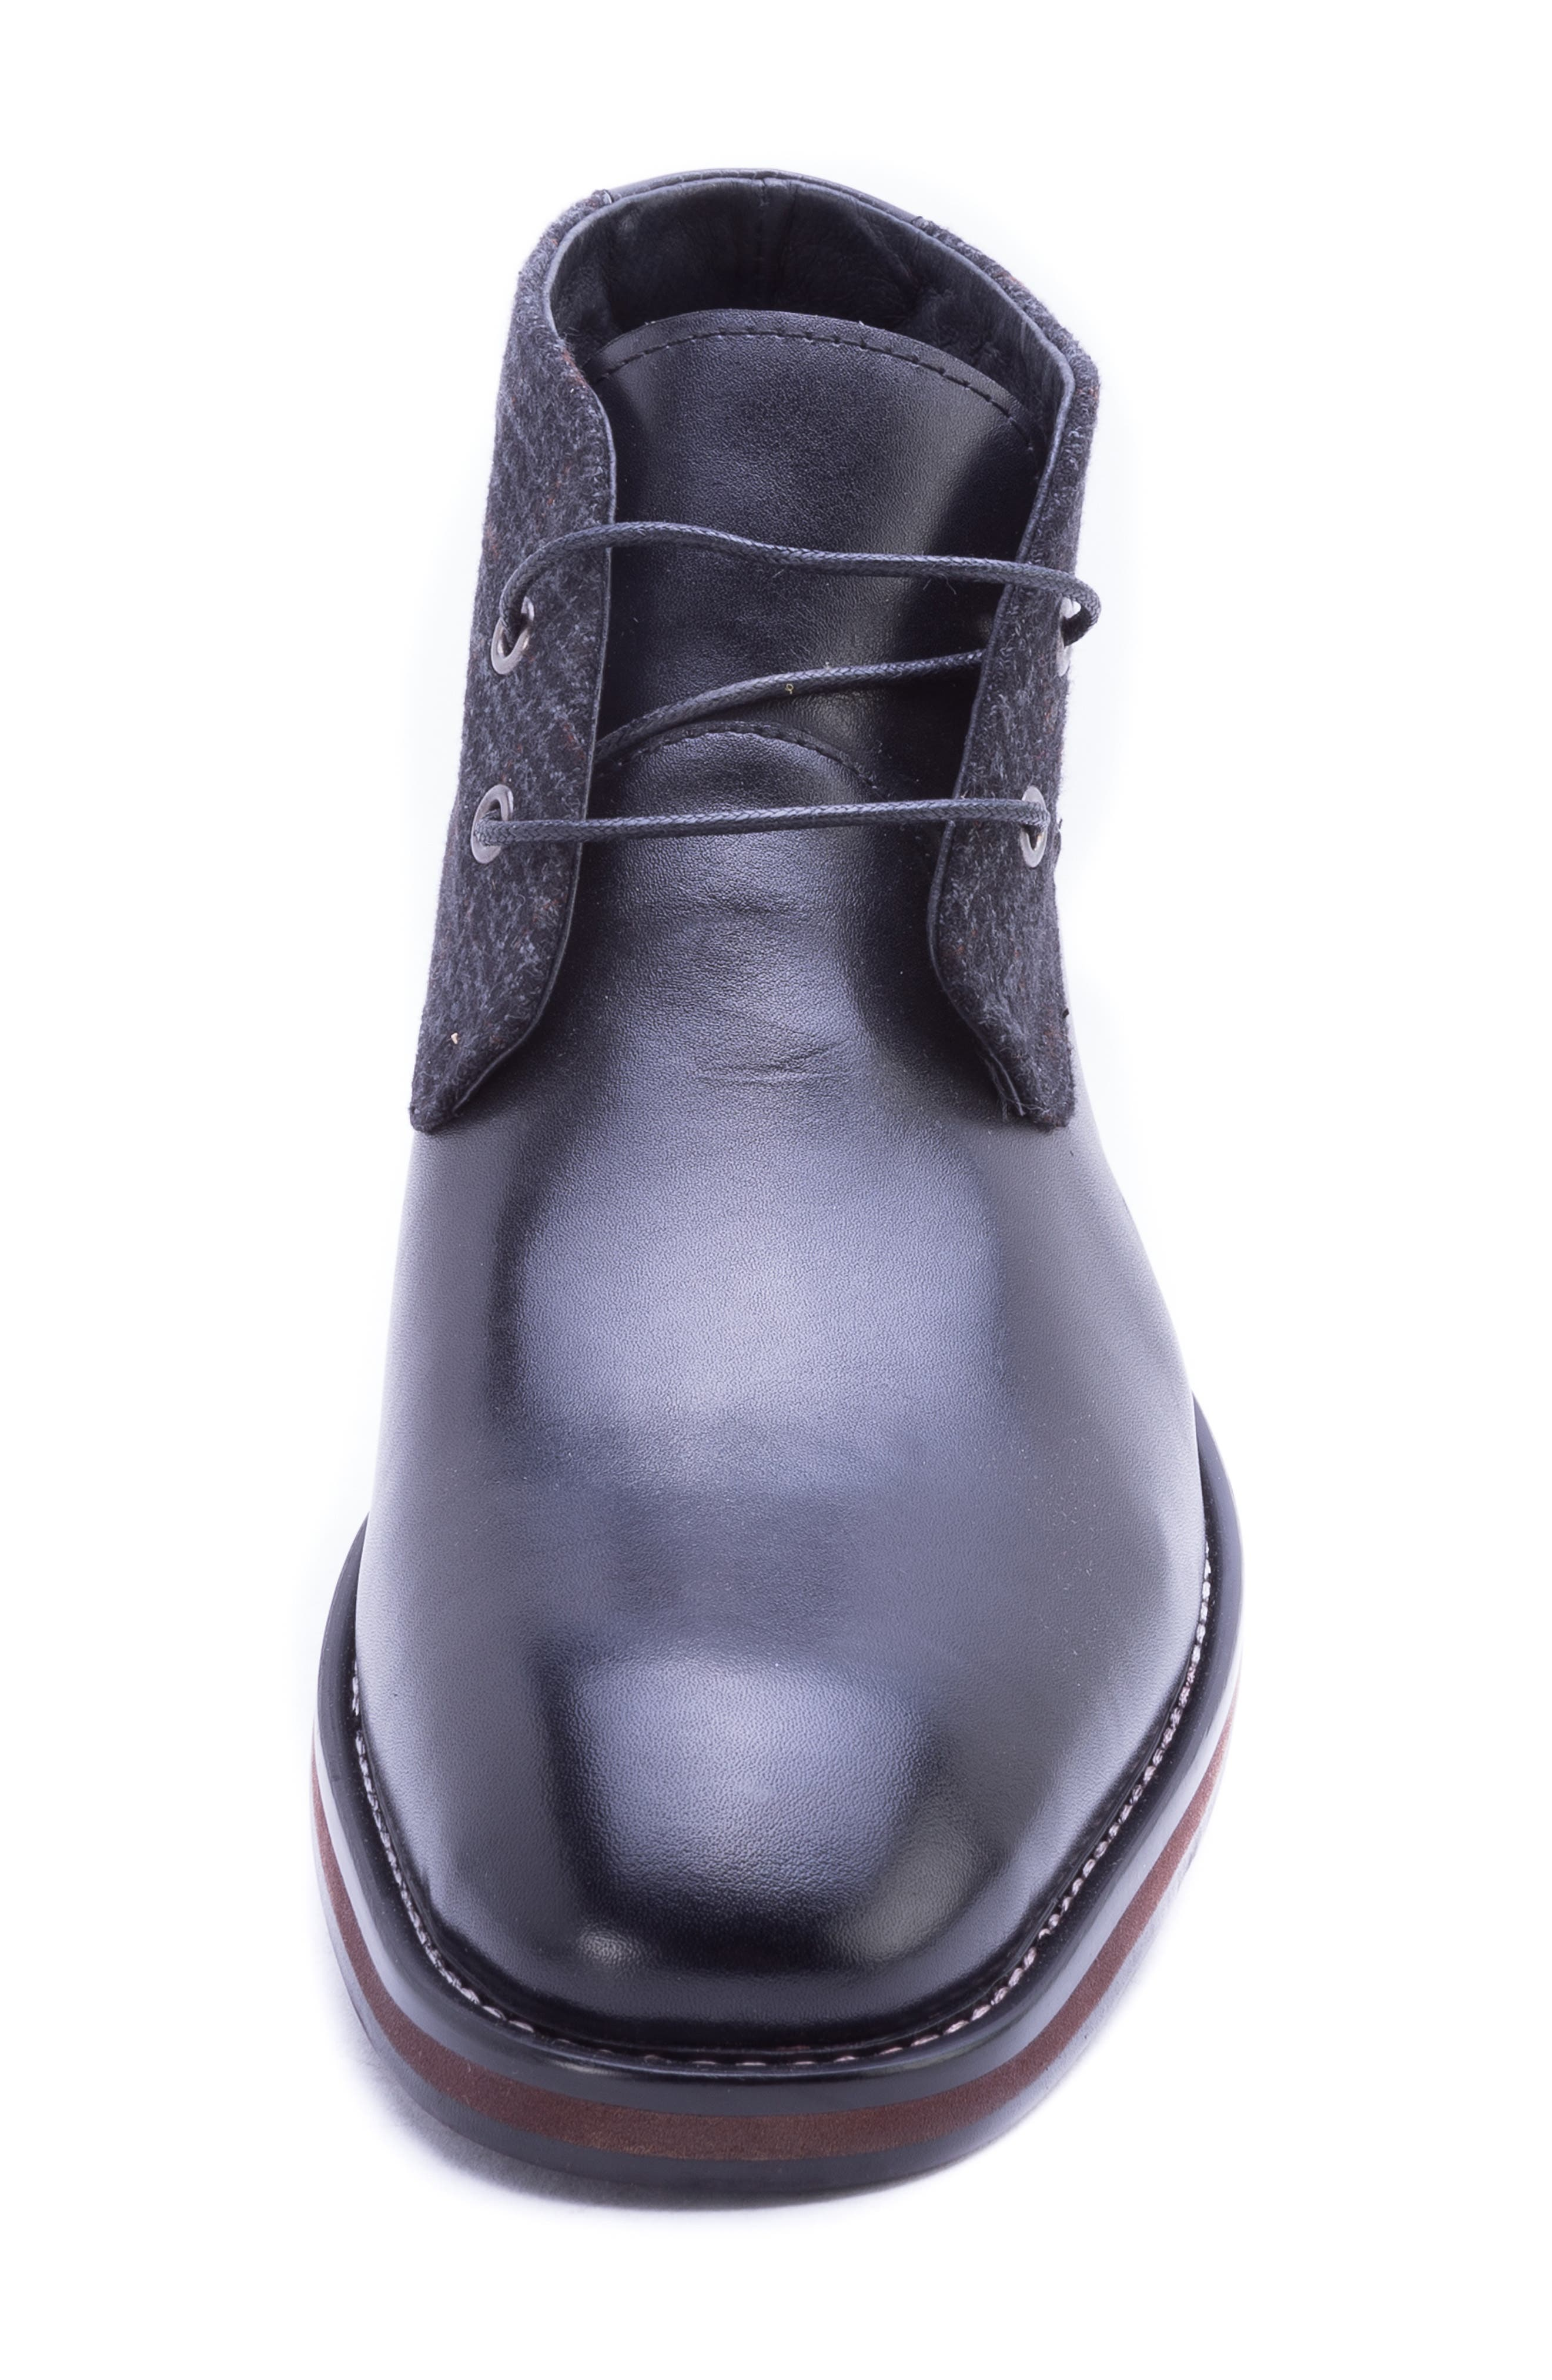 Nebot Chukka Boot,                             Alternate thumbnail 4, color,                             BLACK LEATHER/ FABRIC